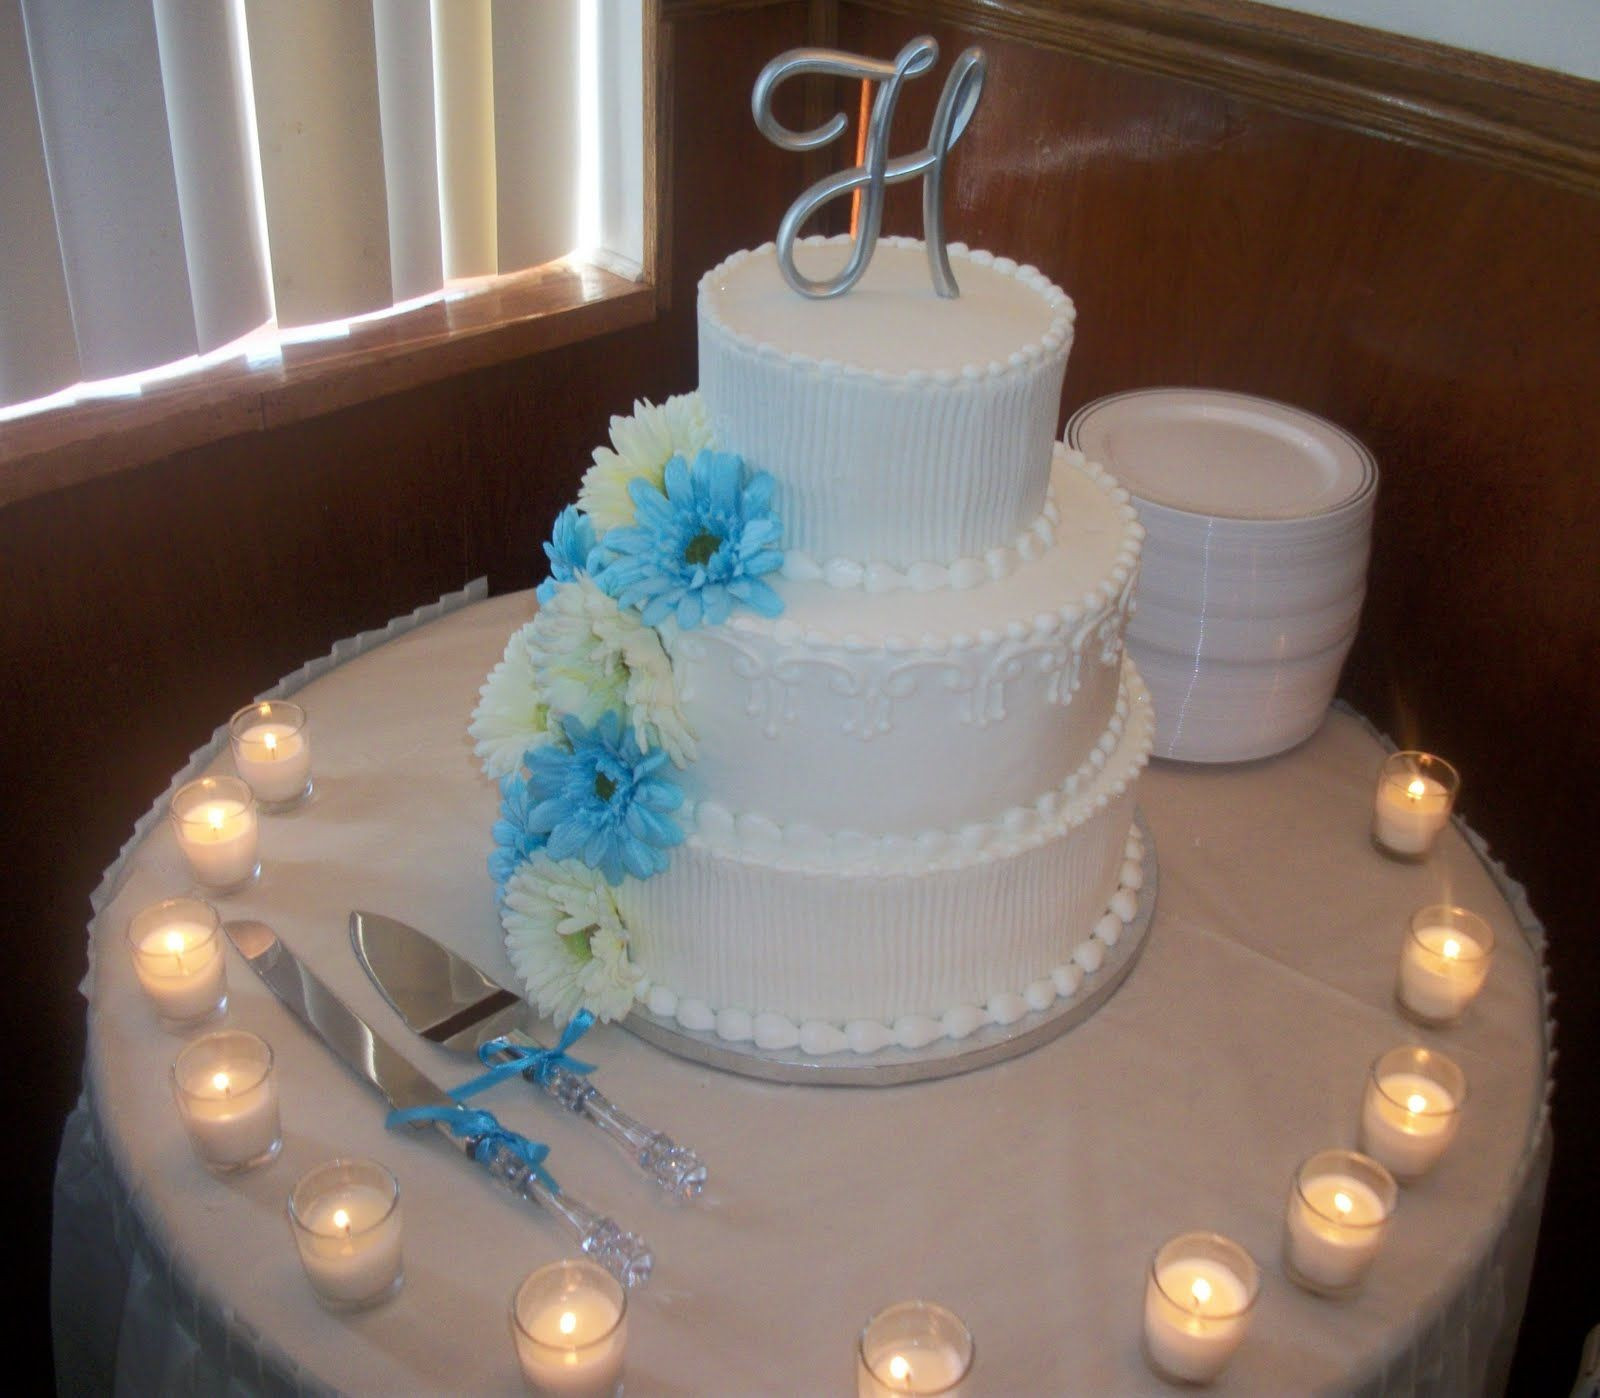 Walmart Bakery Wedding Cakes Price  Walmart Bakery Wedding Cakes